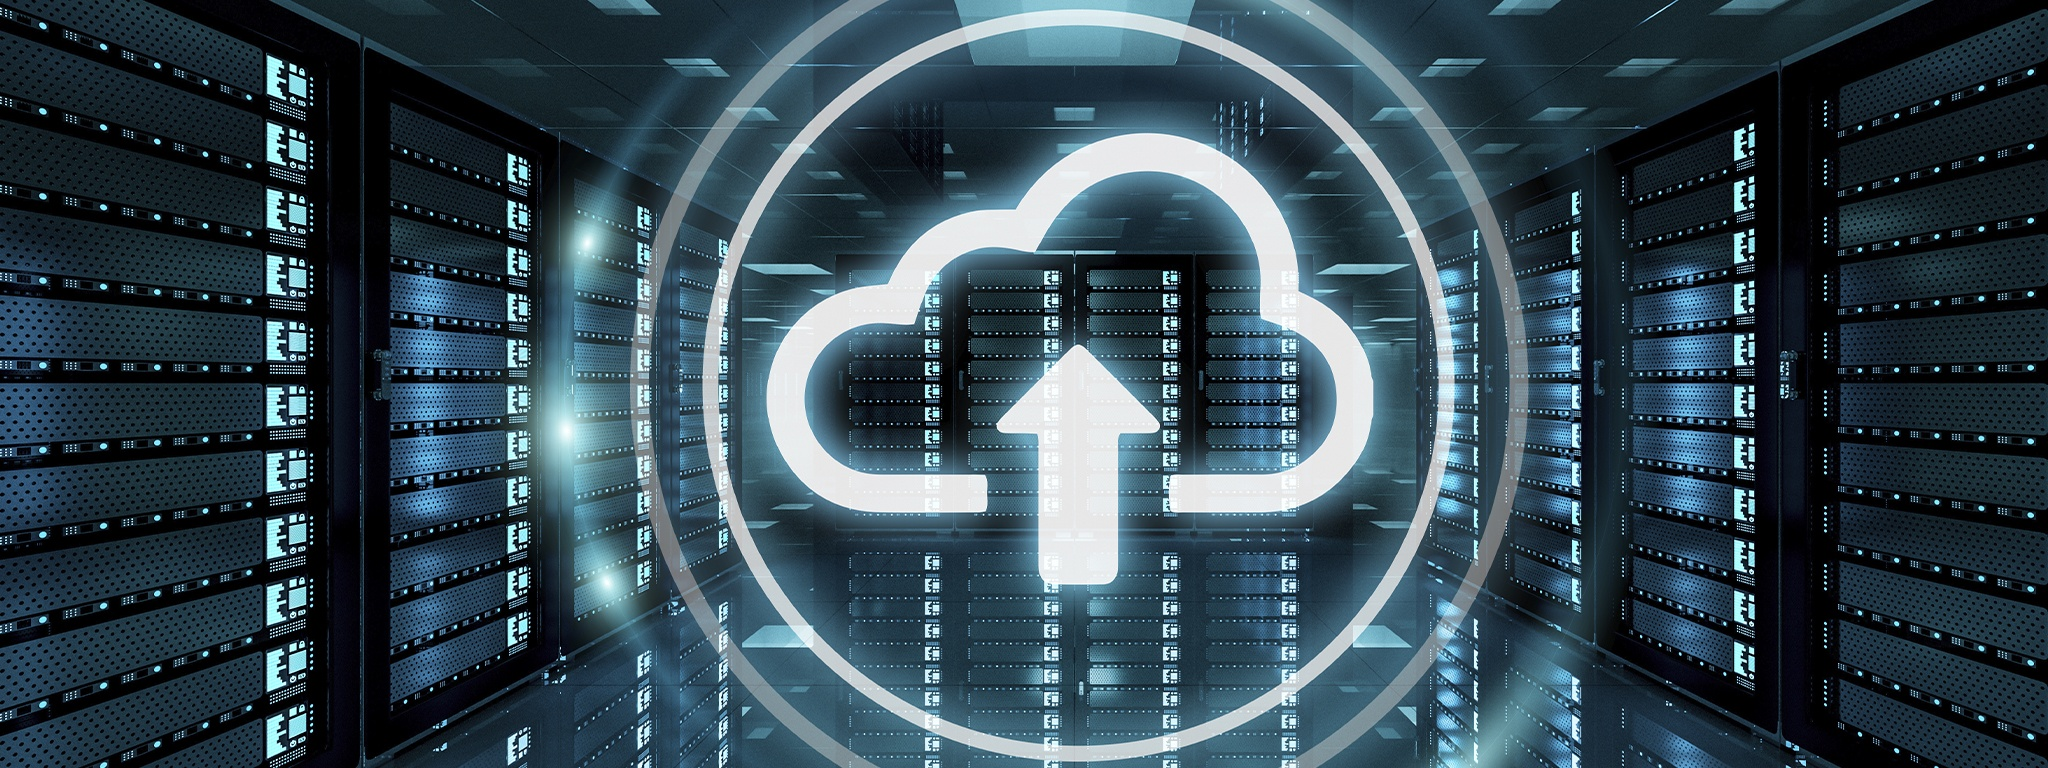 Cloud graphic with an up arrow with server racks in the background